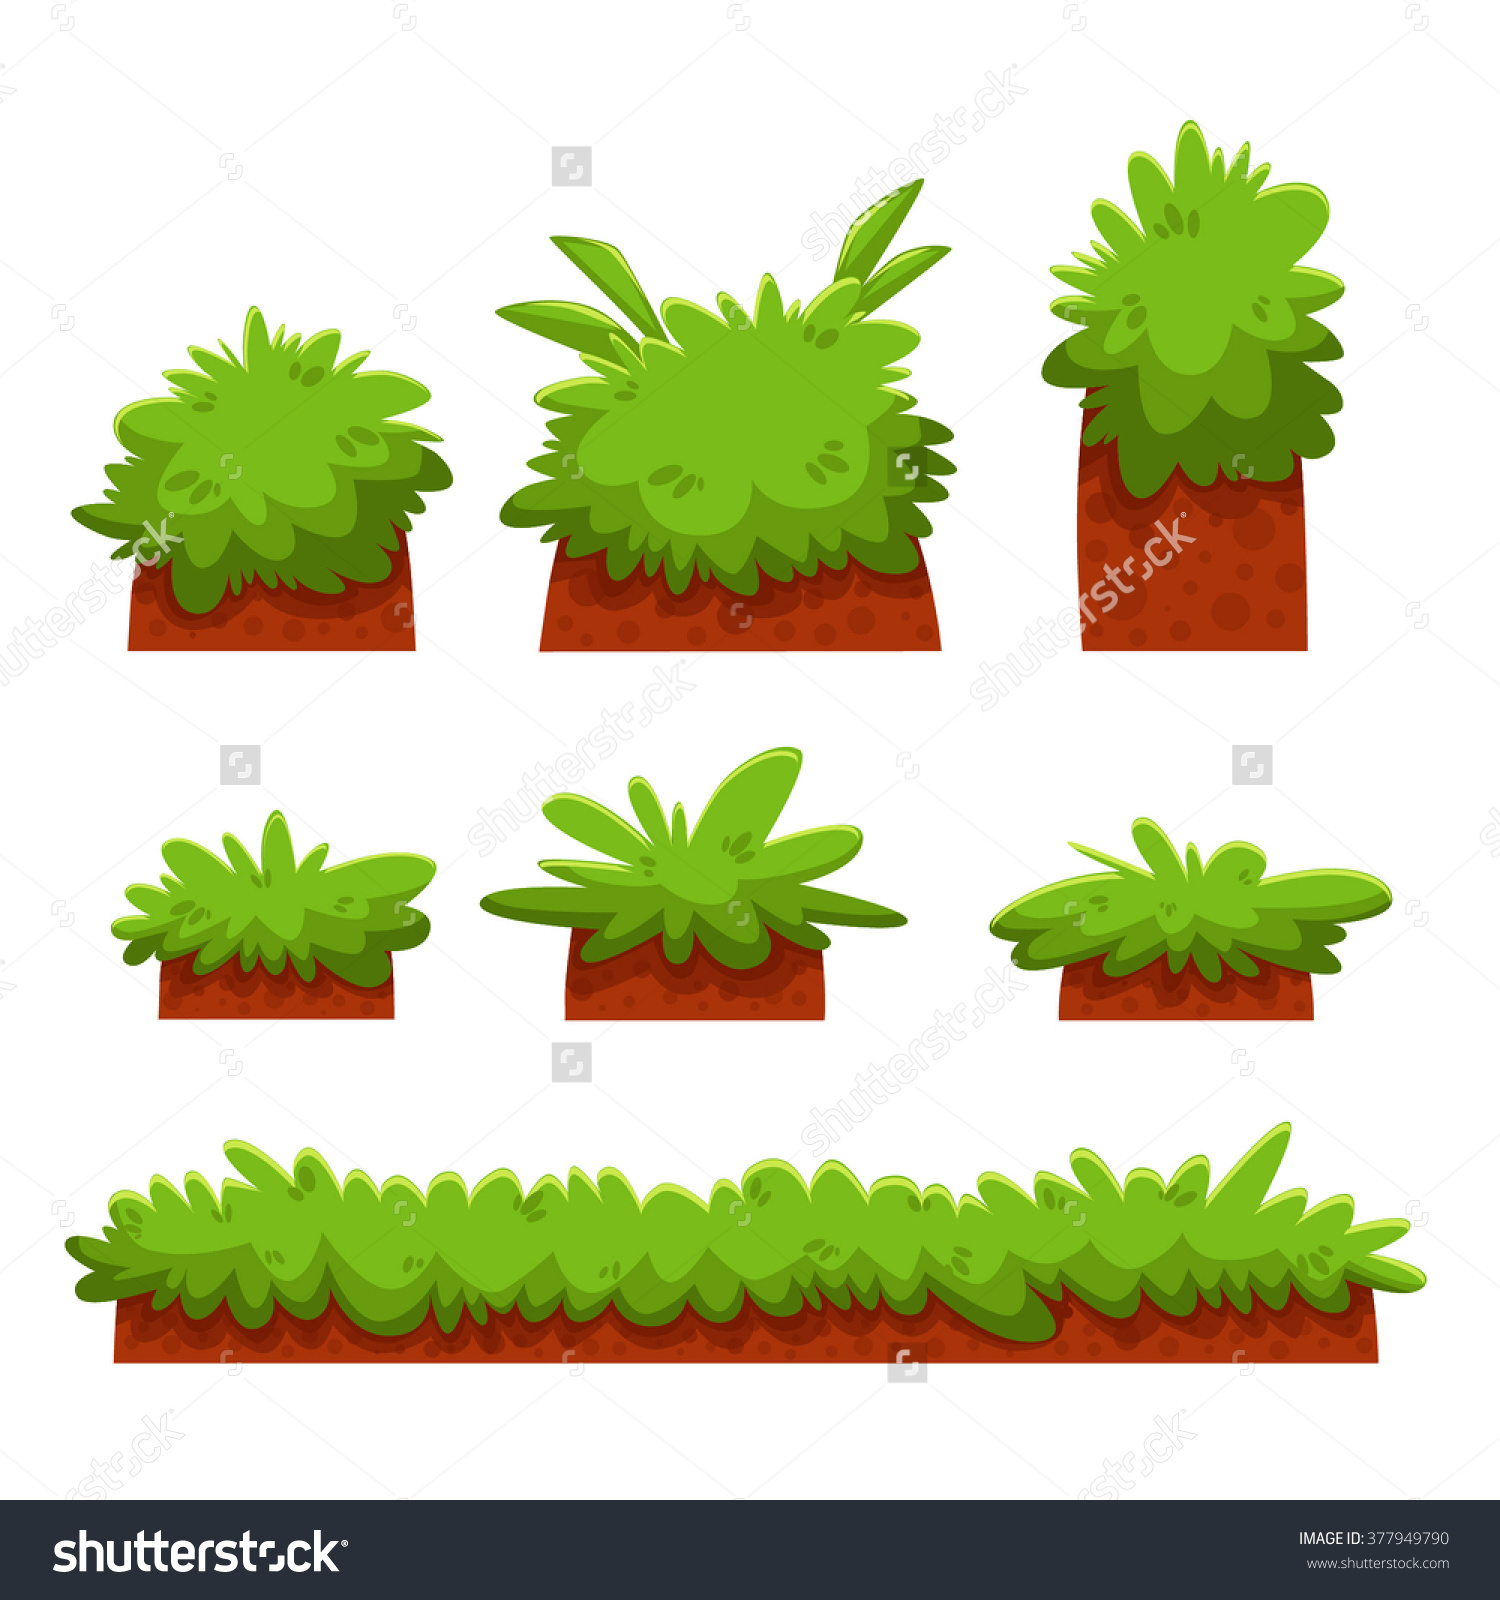 Cartoon Bushes Hedges Grass Leaves Set Stock Vector 377949790.